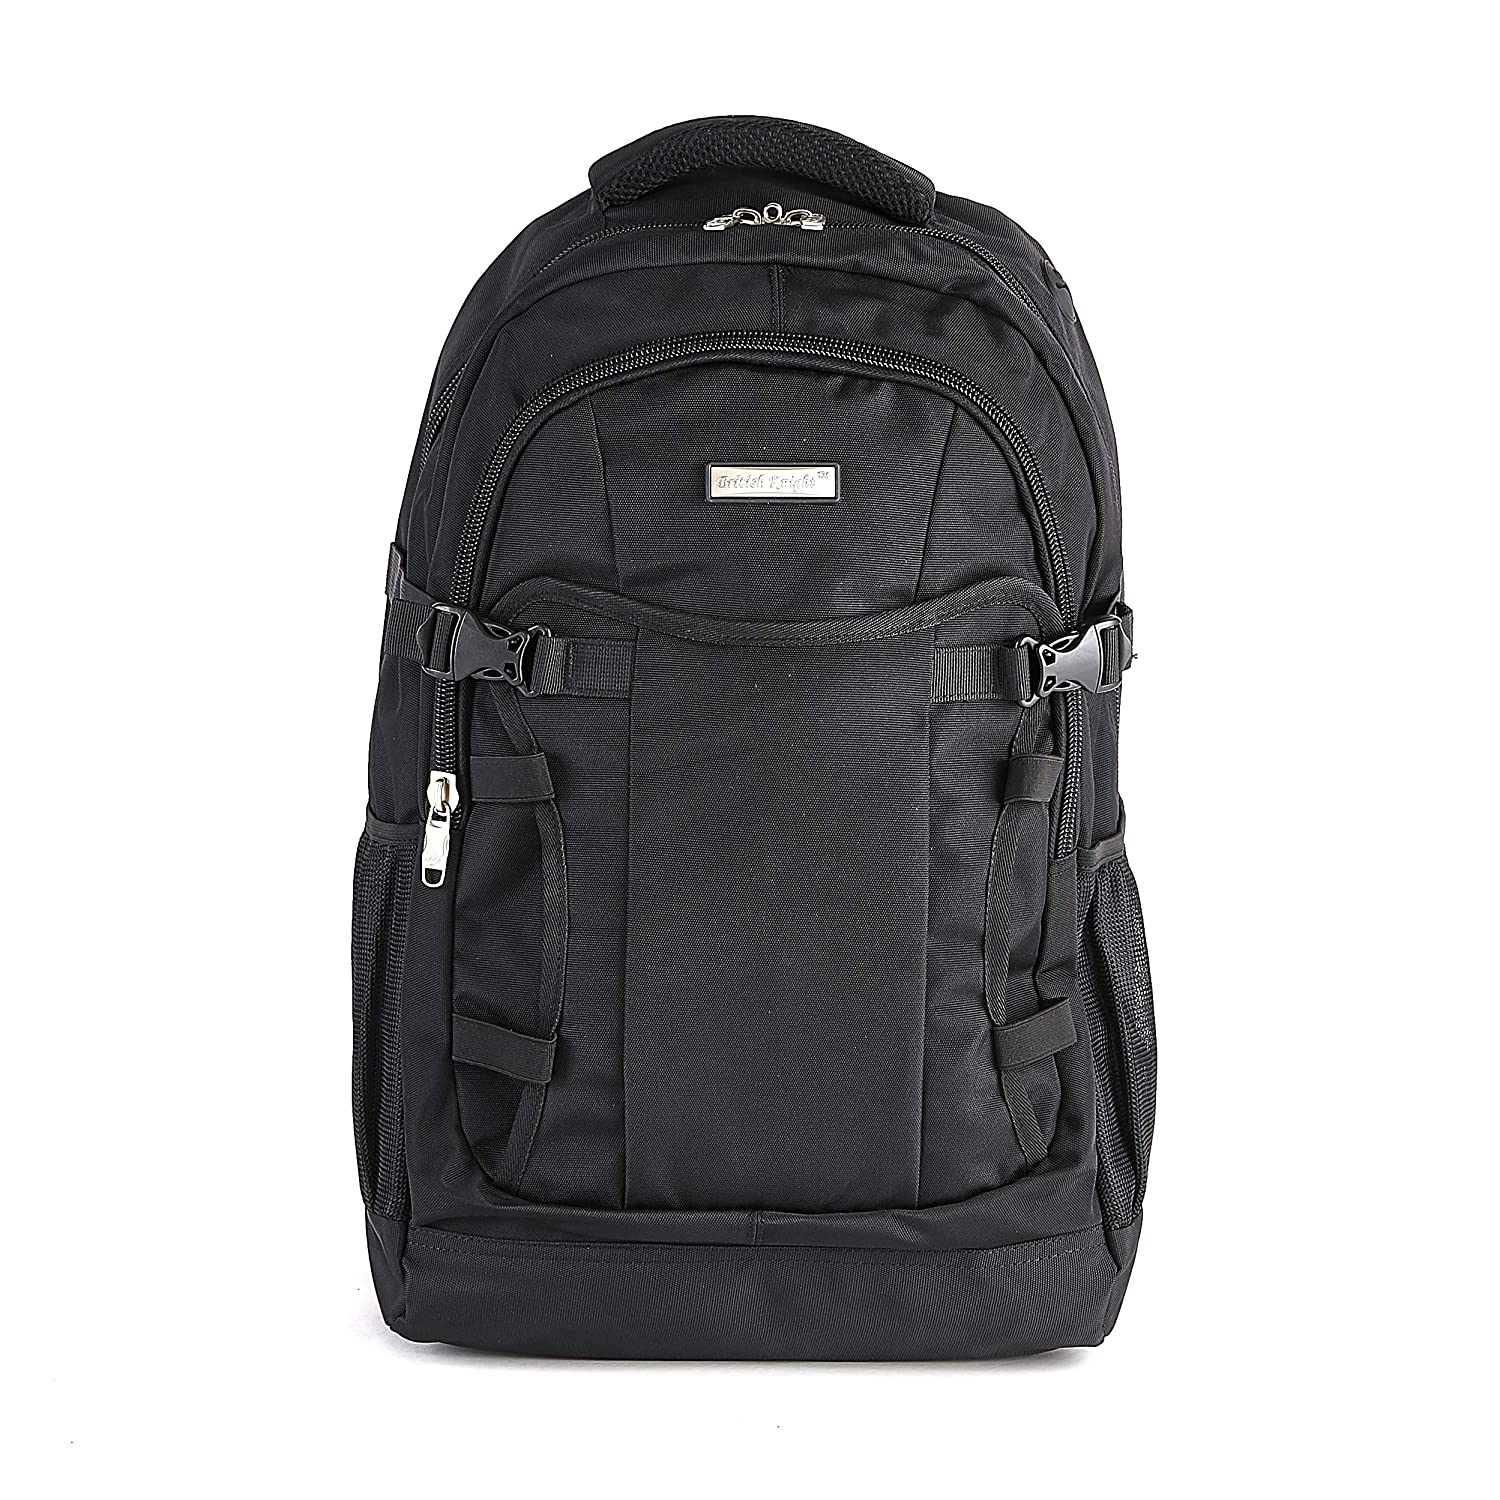 Extra Large Backpack for Men and Women – Water Resistant Laptop Bag with  Padded Sleeve for 17-inch Laptops a2bdce25f